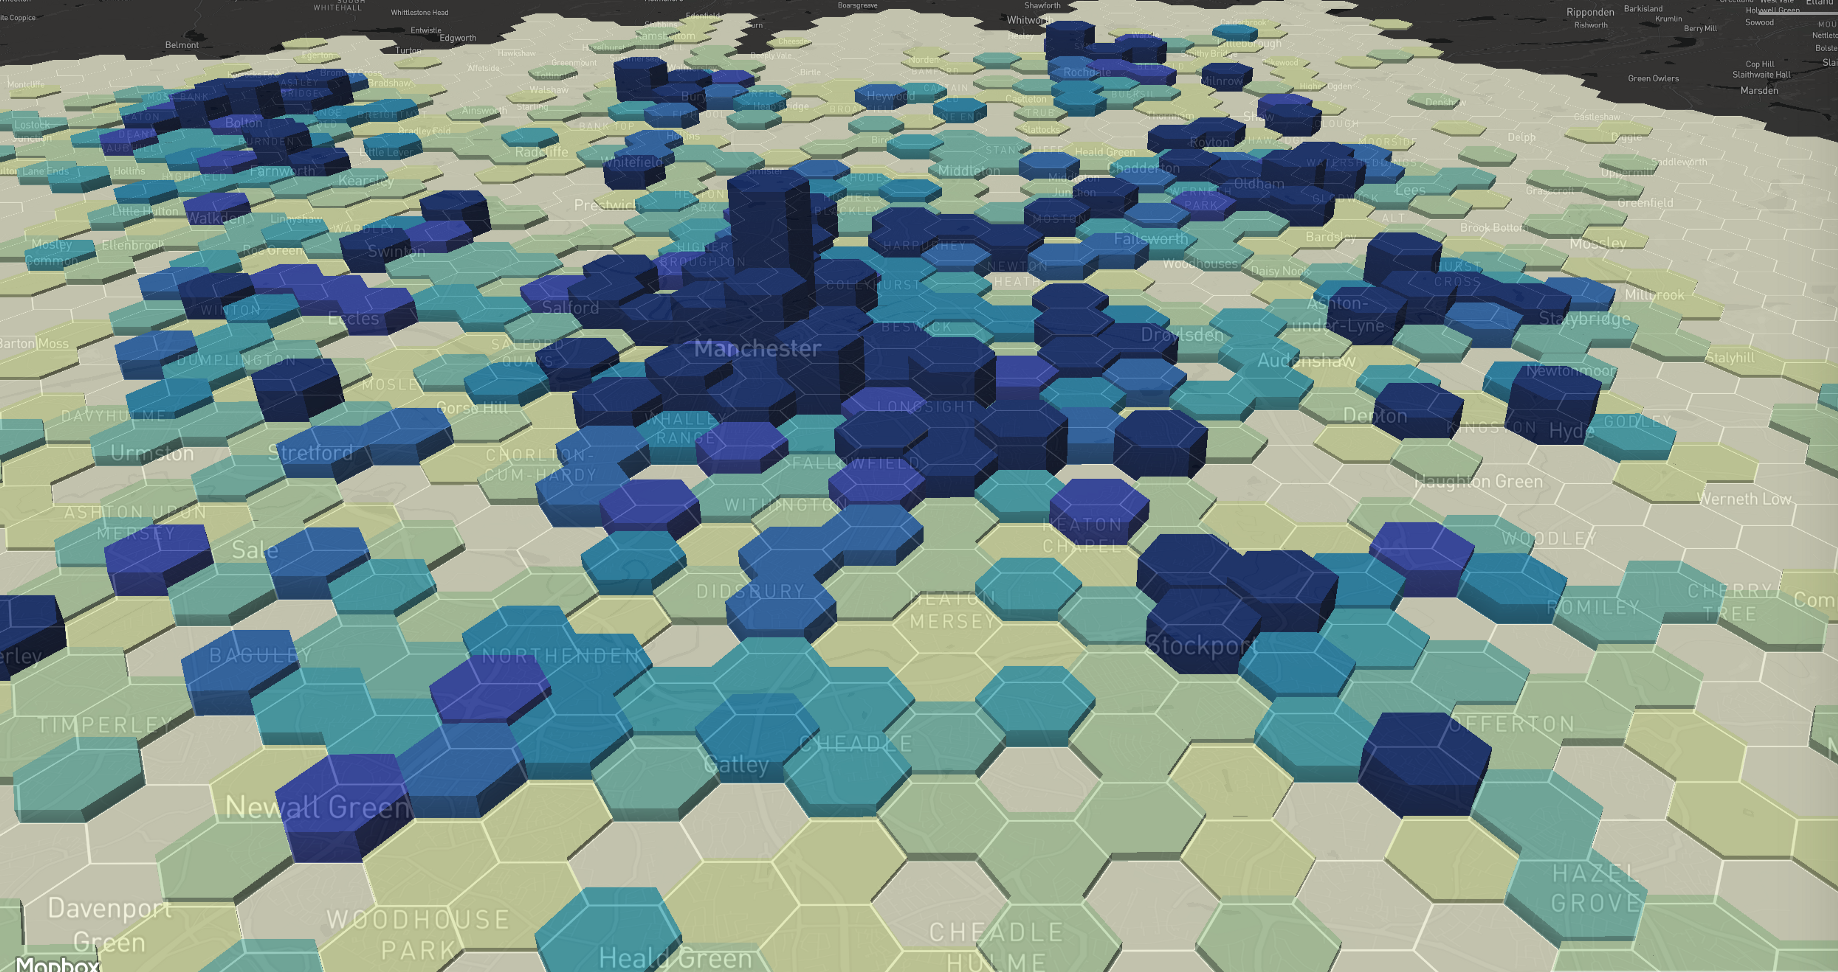 Making a Hex Bin Layer for Greater Manchester - Jamie Whyte - Medium